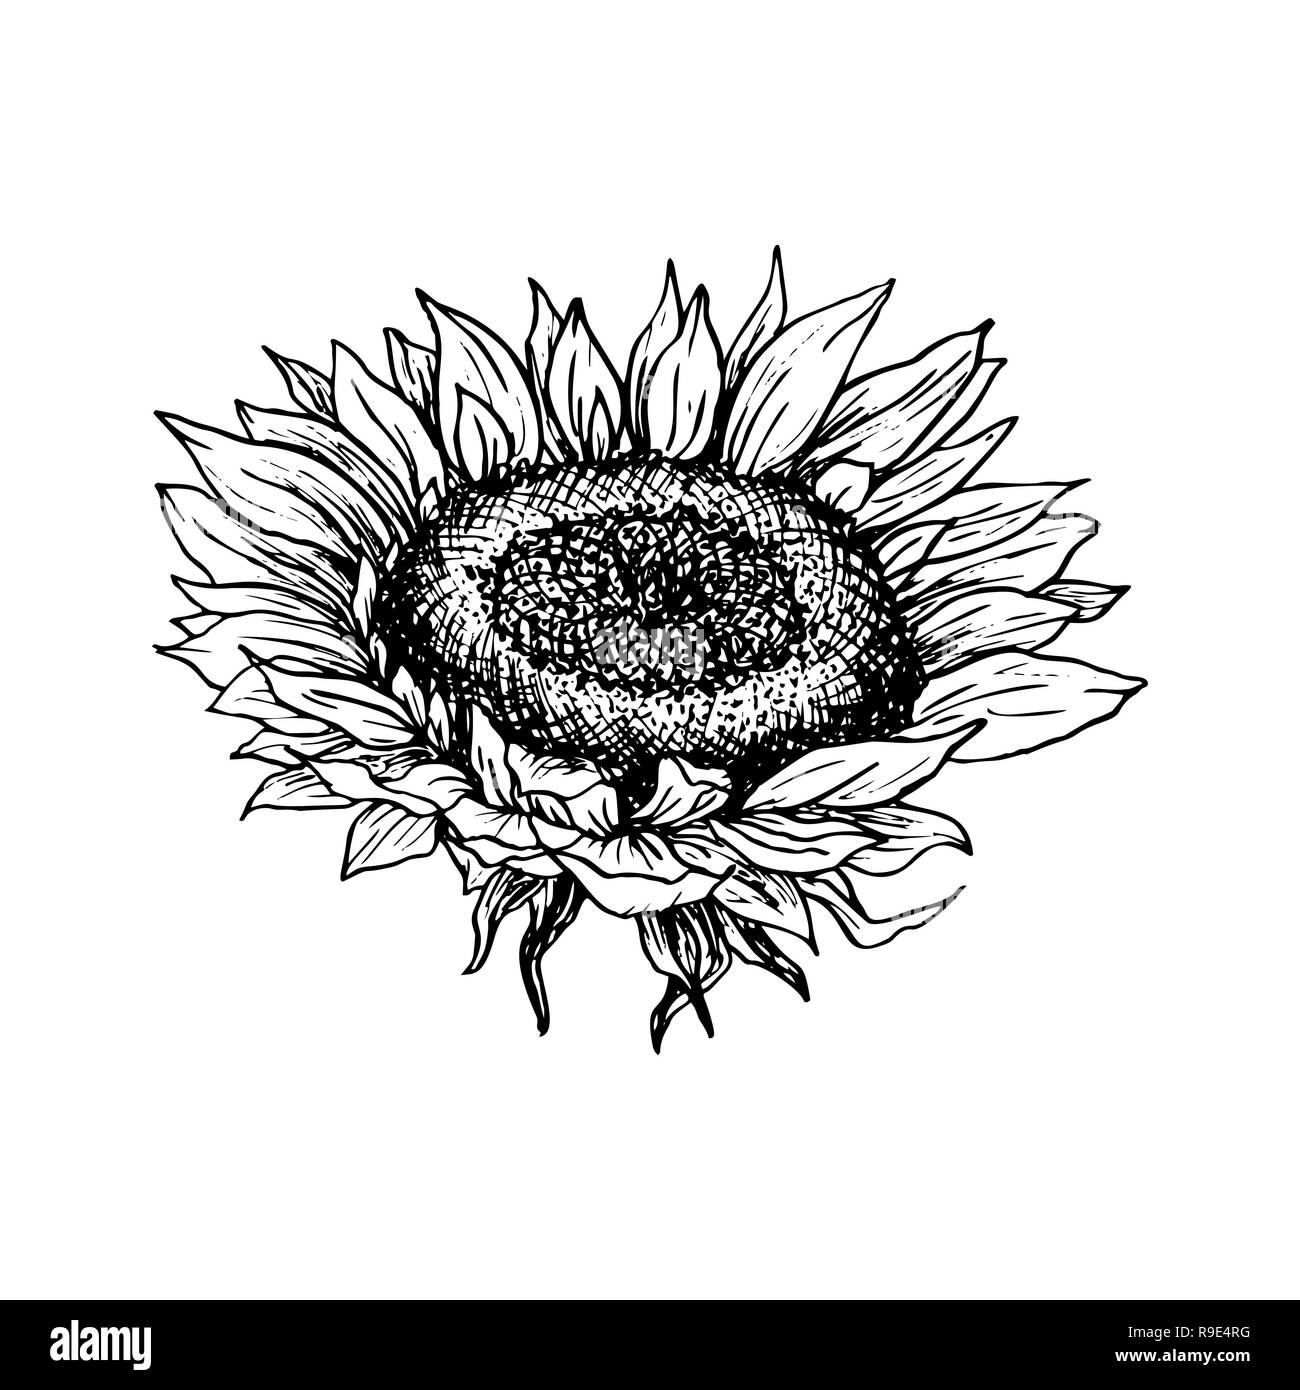 Freehand Line Drawing Sunflower Stock Vector Images - Alamy